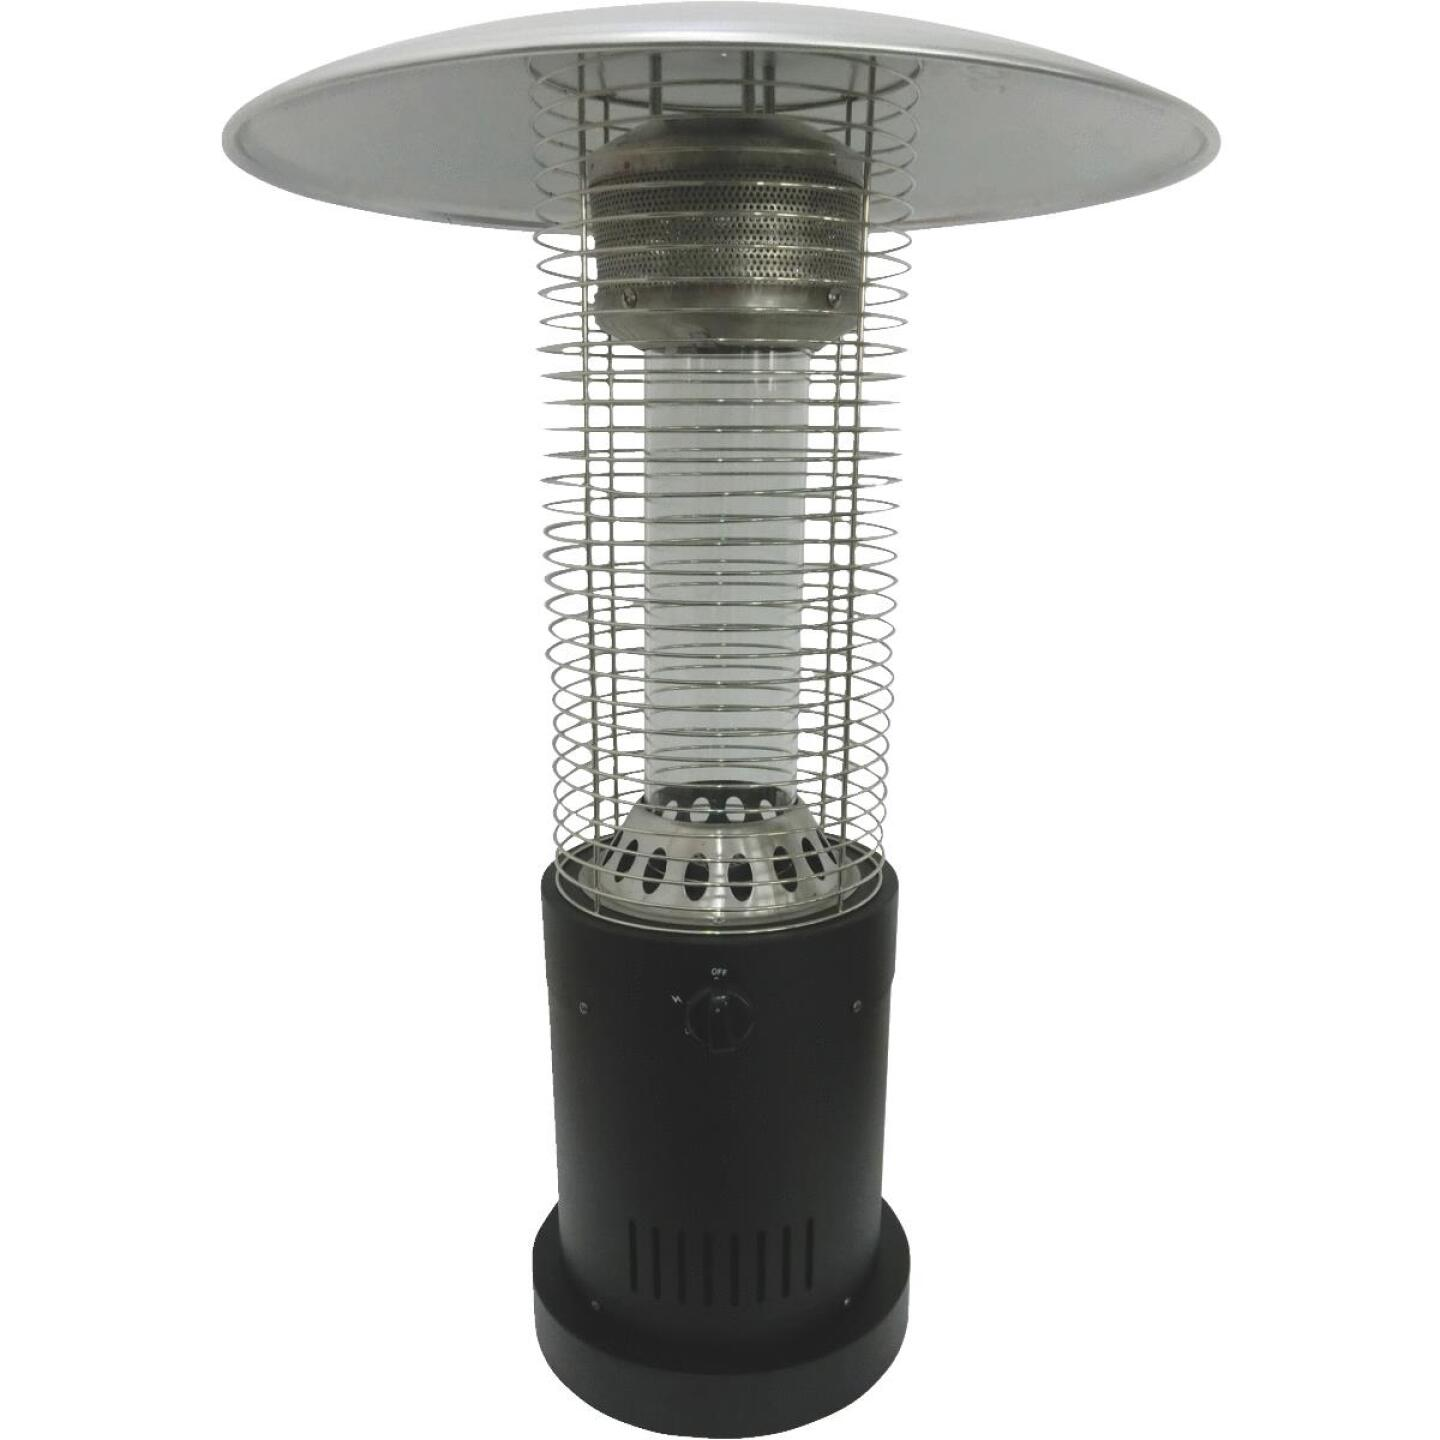 Bond 10,000-BTU Bronze Steel Rapid Induction Tabletop Gas Patio Heater Image 1